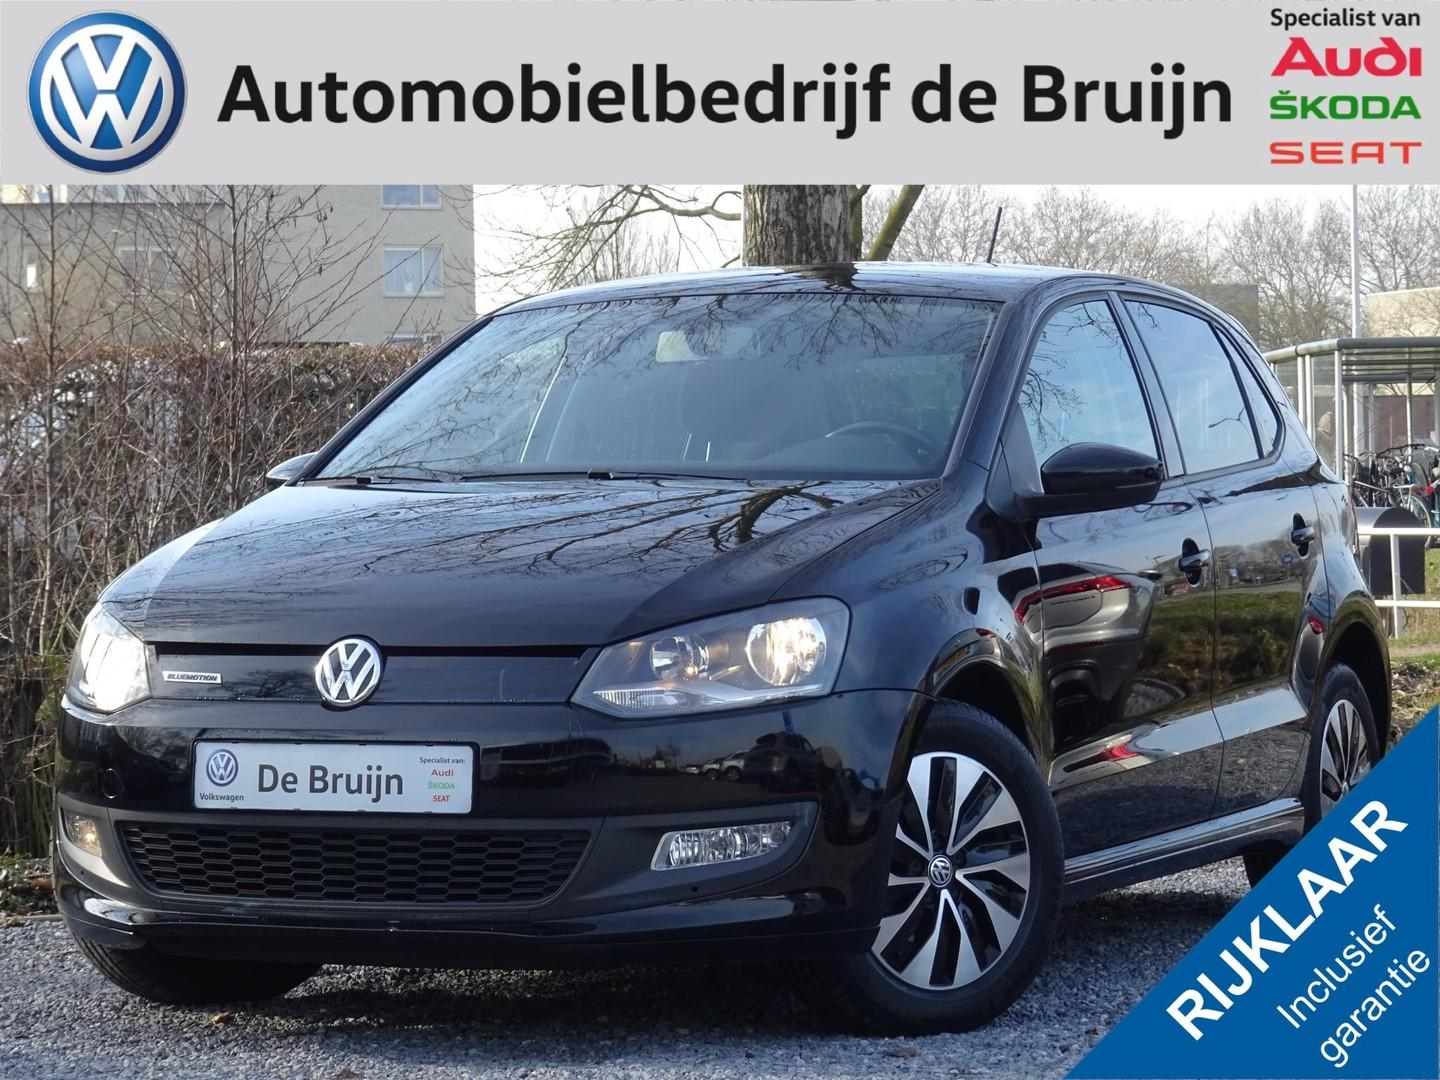 Volkswagen Polo Bluemotion tsi 95pk 5d (navi,lm,cruise,bluetooth)